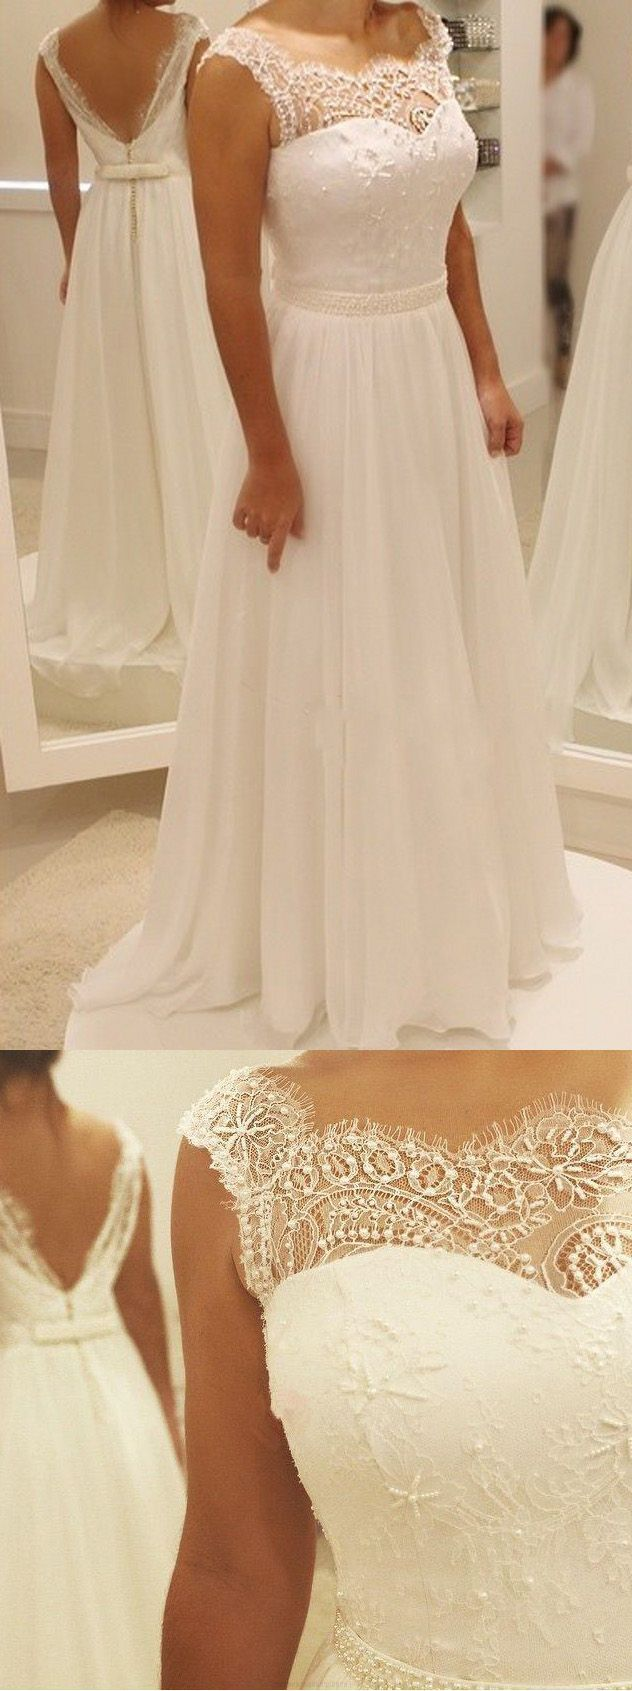 Wedding Dresses Princess, Wedding Dresses 2017, Lace A Line Wedding dresses, Simple Lace Wedding dresses, Simple Wedding Dresses, Simple White Wedding dresses, White Lace dresses, Lace Wedding dresses, A Line dresses, Long White dresses, A line Wedding Dresses, White A-line Wedding Dresses, Princess Long Wedding Dresses, Long Wedding Dresses, White Wedding Dresses, A-line/Princess Wedding Dresses, White A-line/Princess Wedding Dresses, A-line/Princess Long Wedding Dresses, Beautiful We...